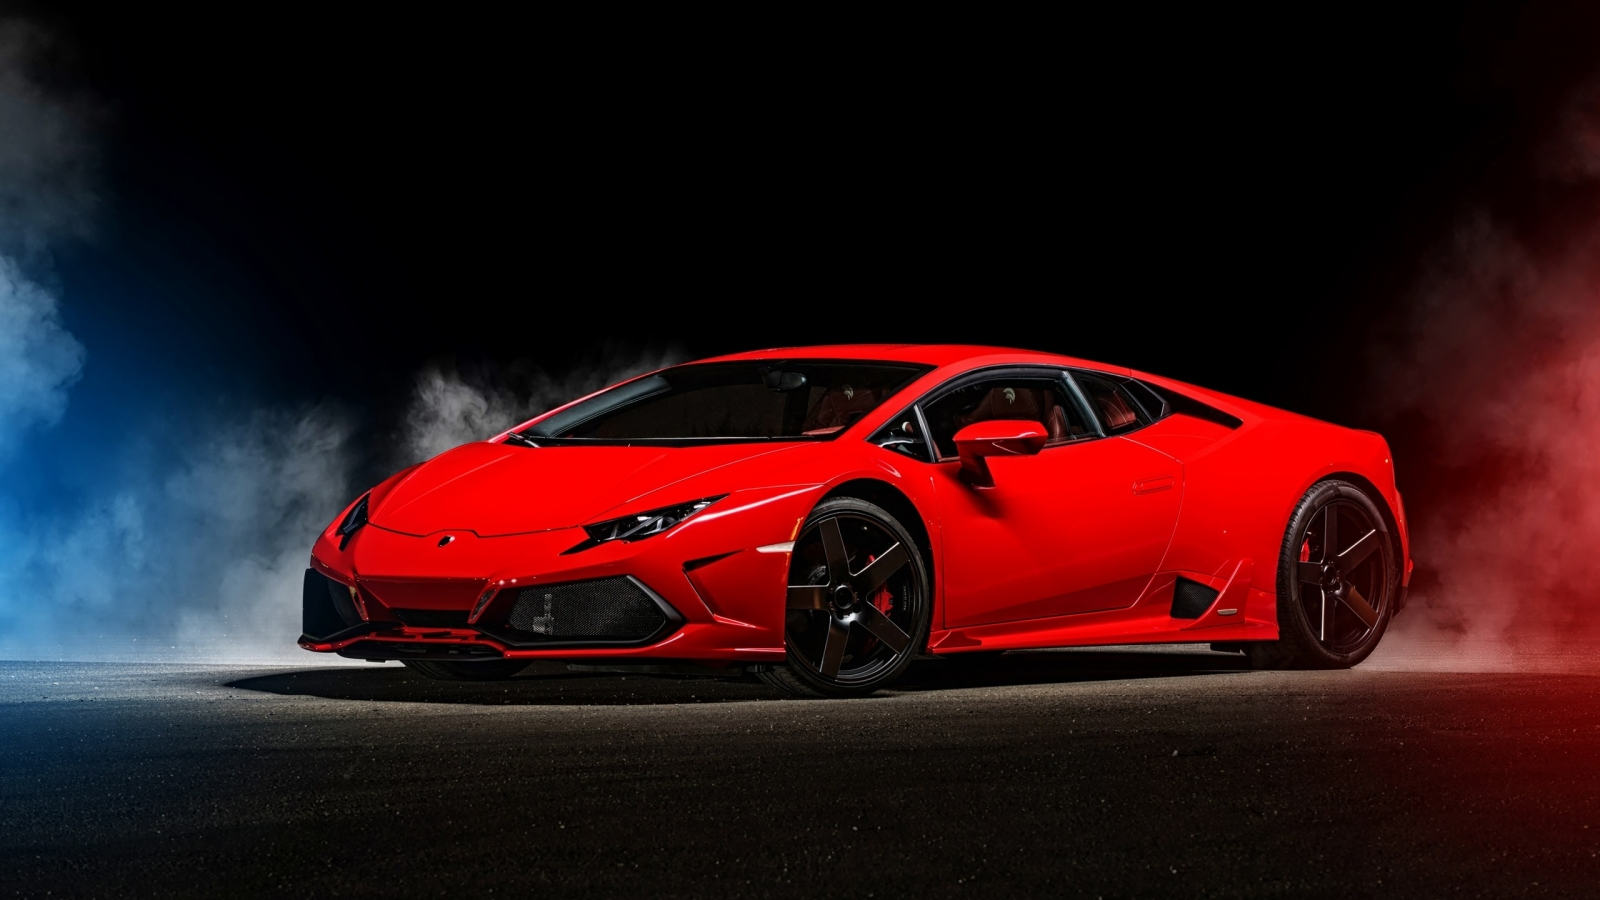 2015 Red Lamborghini Huracan for 1600 x 900 HDTV resolution